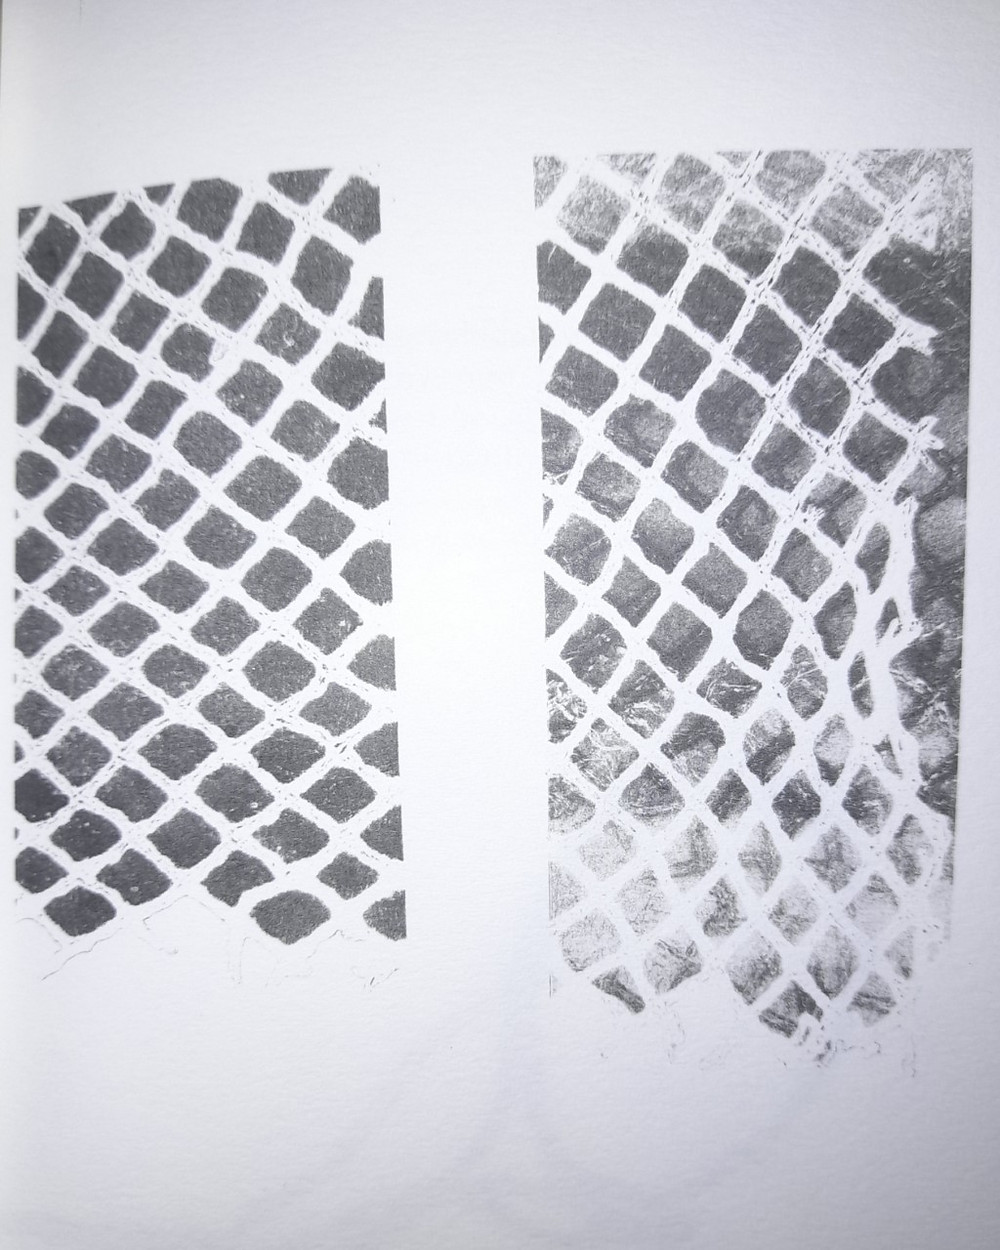 Another black and white monograph abstract diptych llustration from the work, with a cross hatched design giving the impressin of a chain link fence.